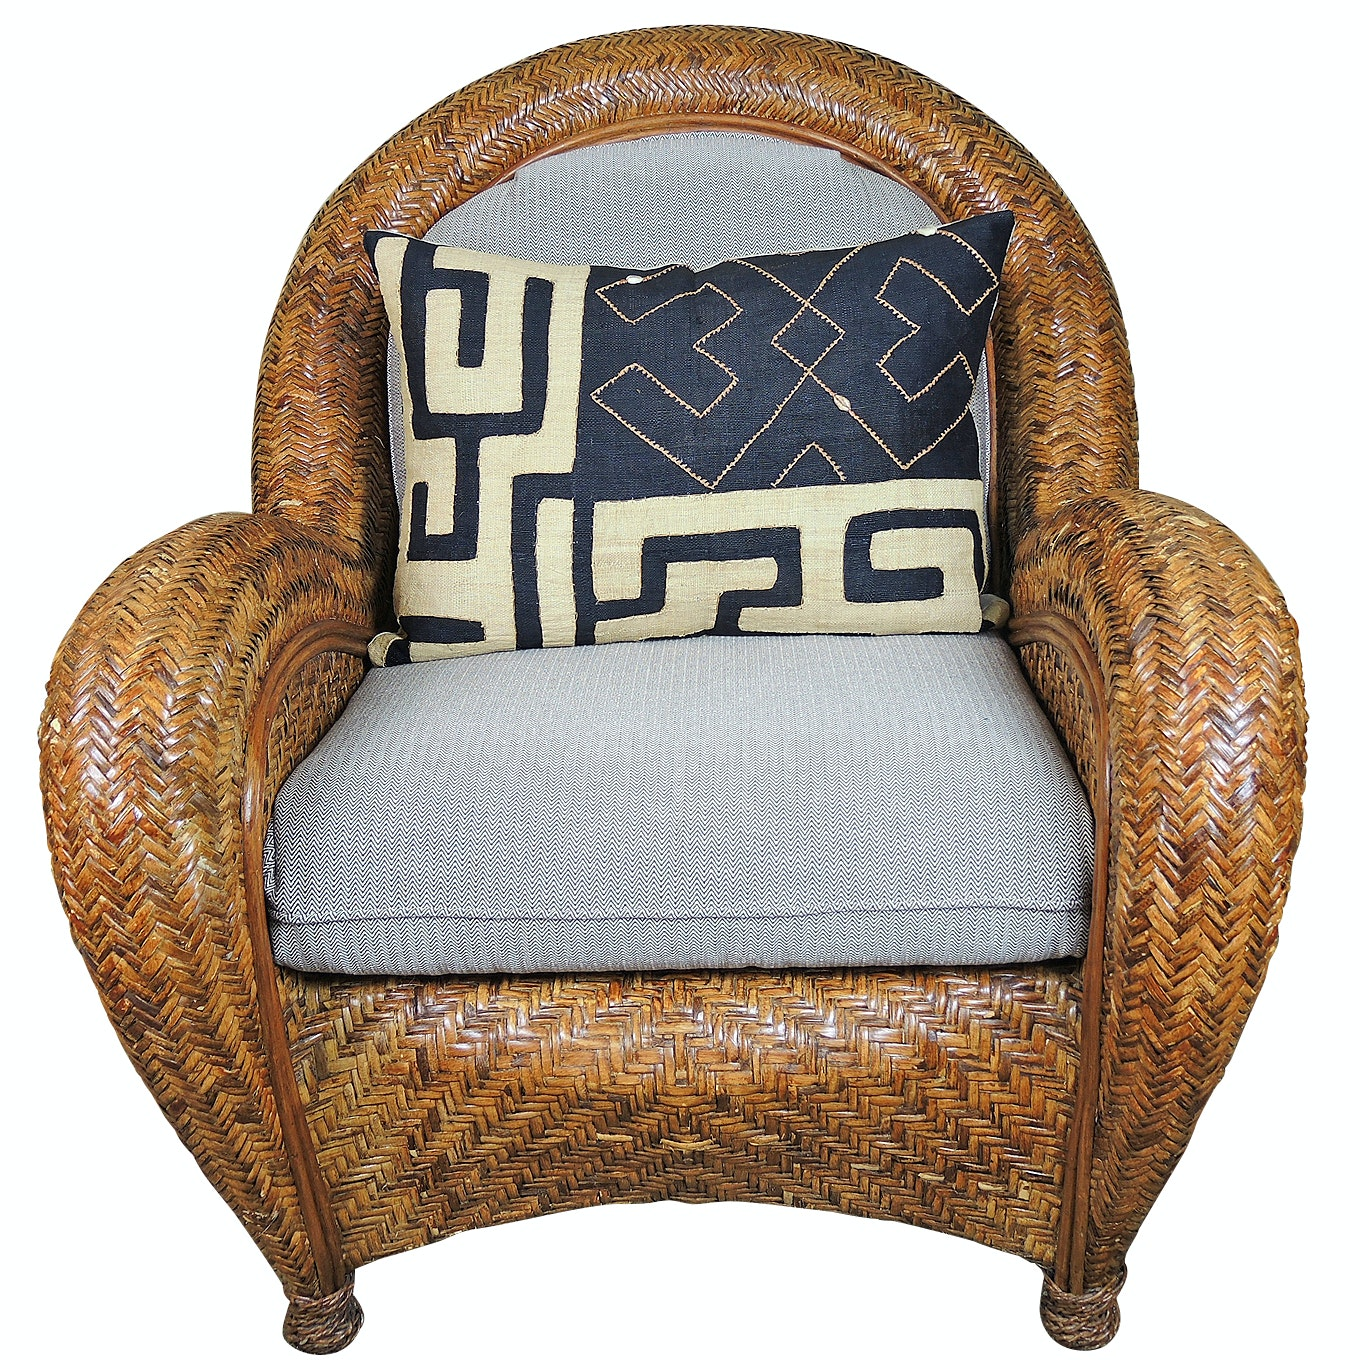 Contemporary Wicker Armchair and Accent Pillow Attributed to Pier One